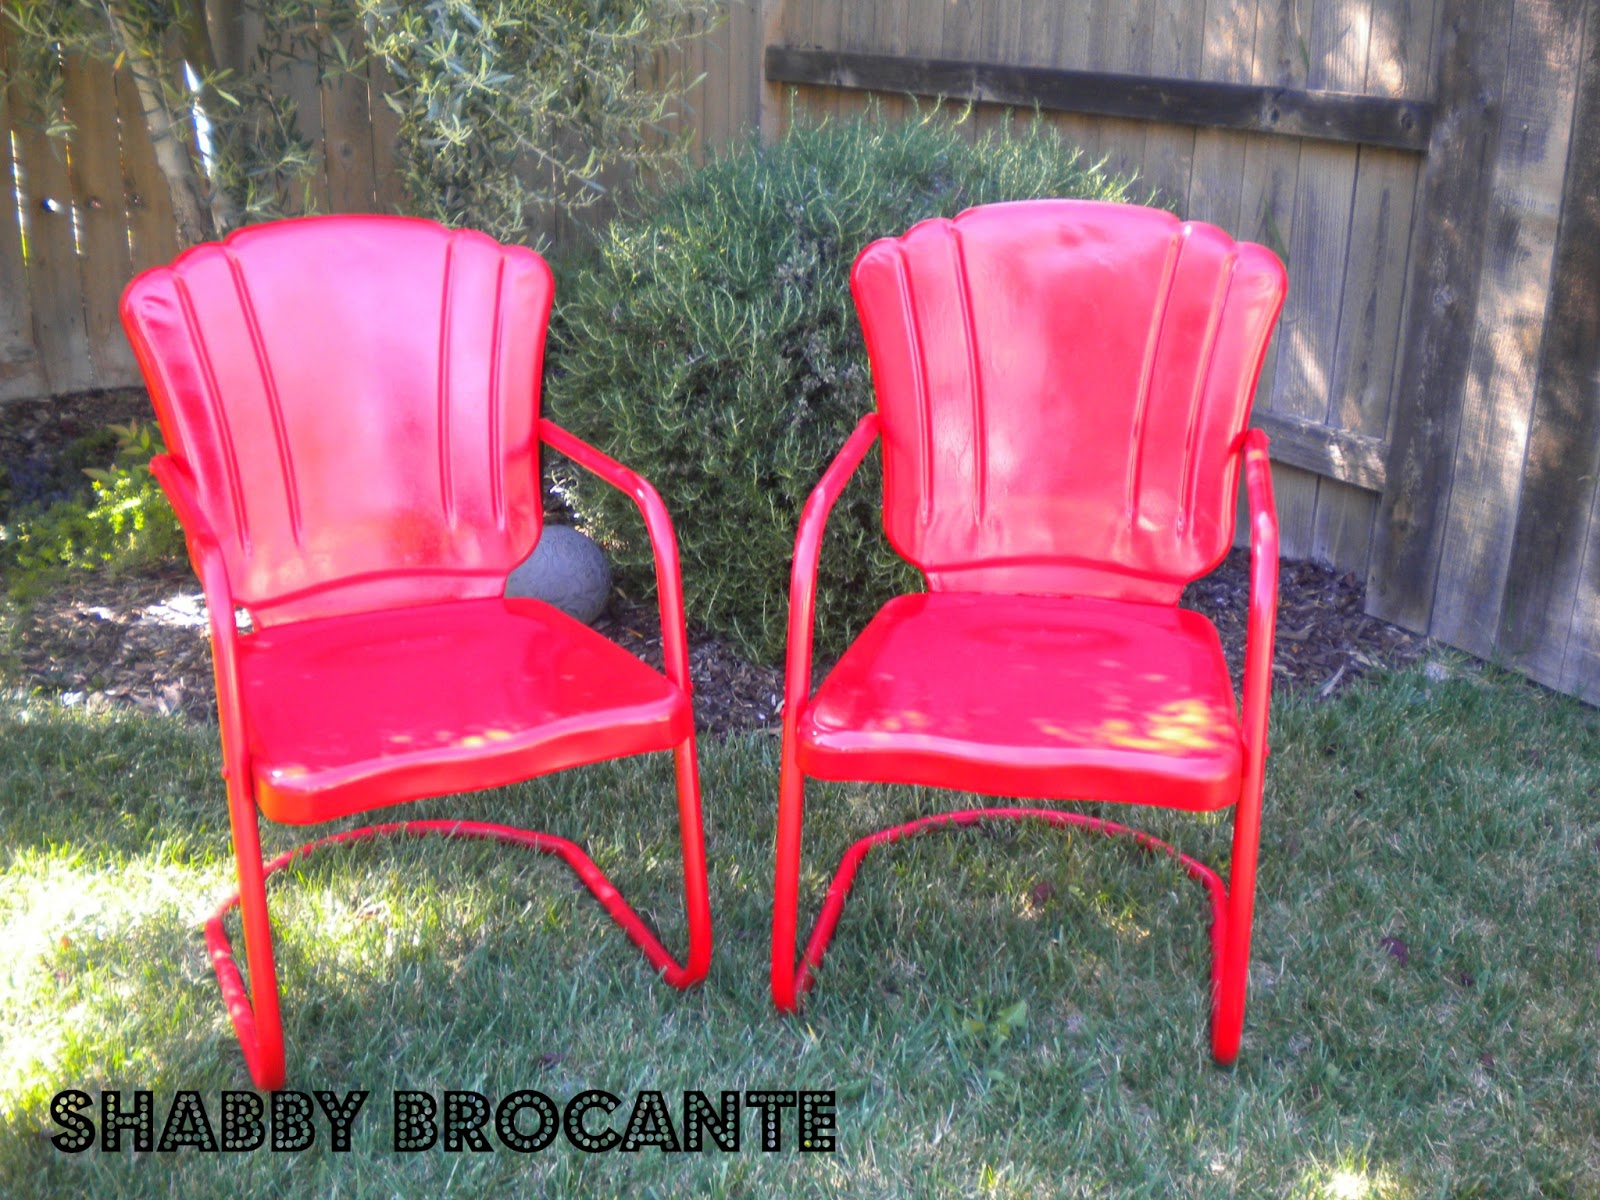 Retro Metal Patio Chairs Church Craigslist Shabby Brocante Vintage Lawn